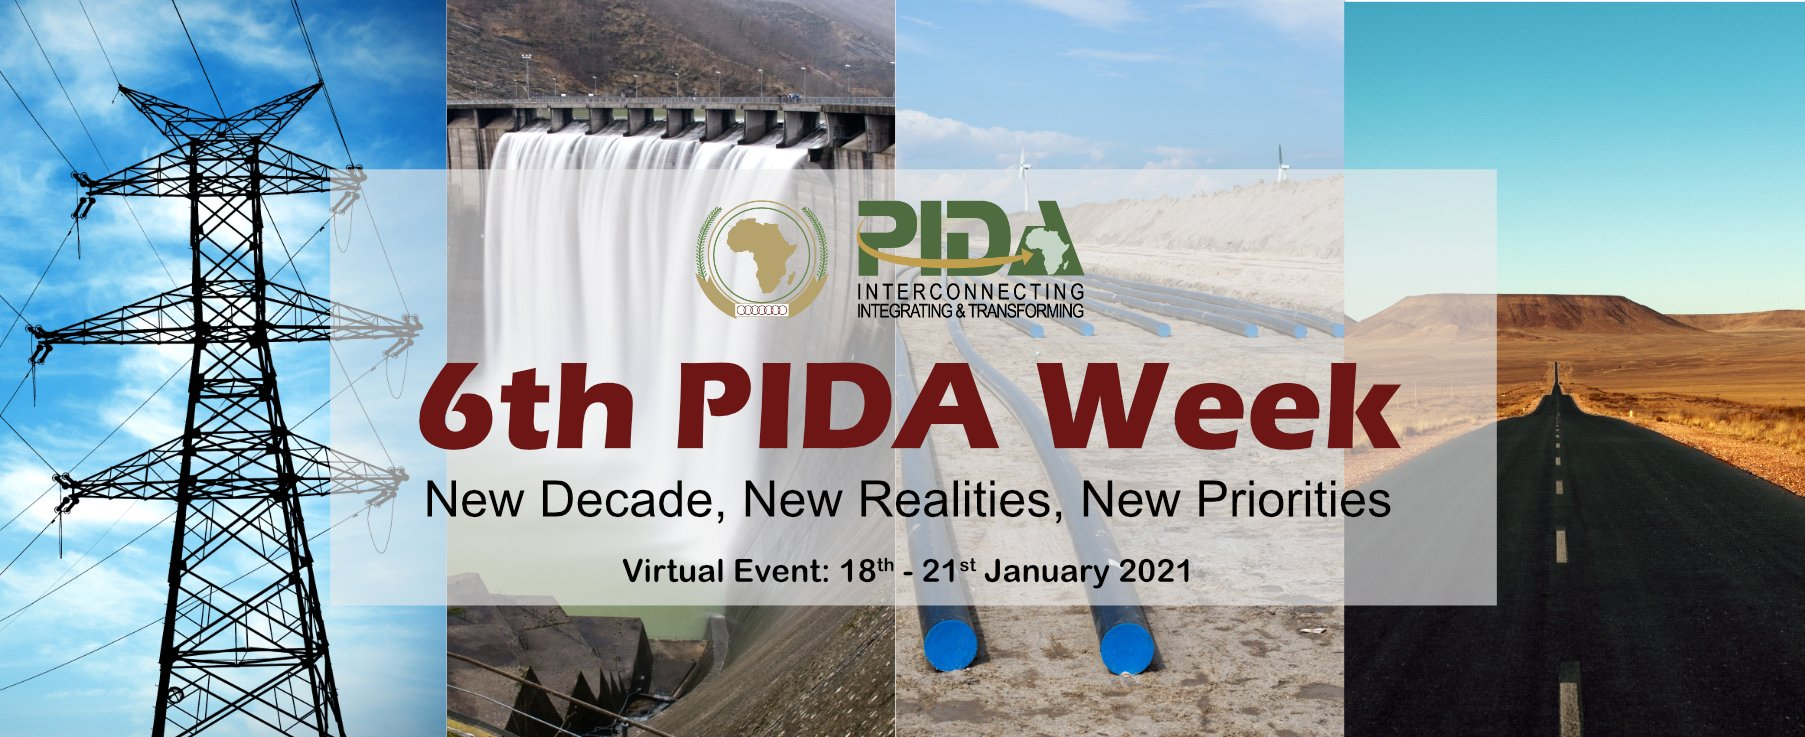 6th PIDA WEEK HIGHLIGHTS